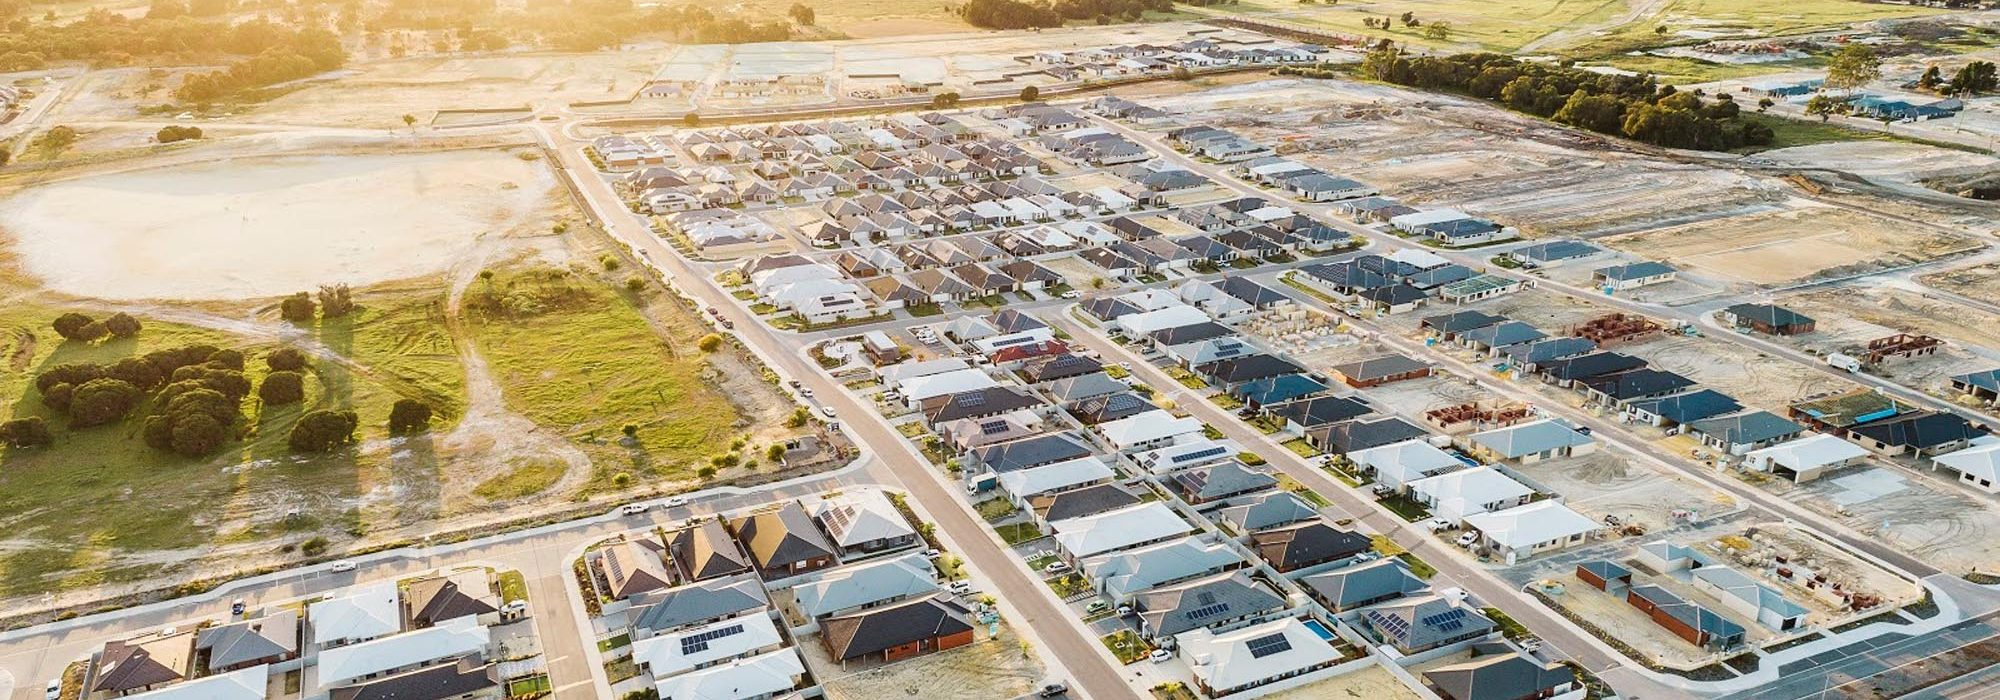 Aerial view of Brabham where Move Homes has House and Land Packages